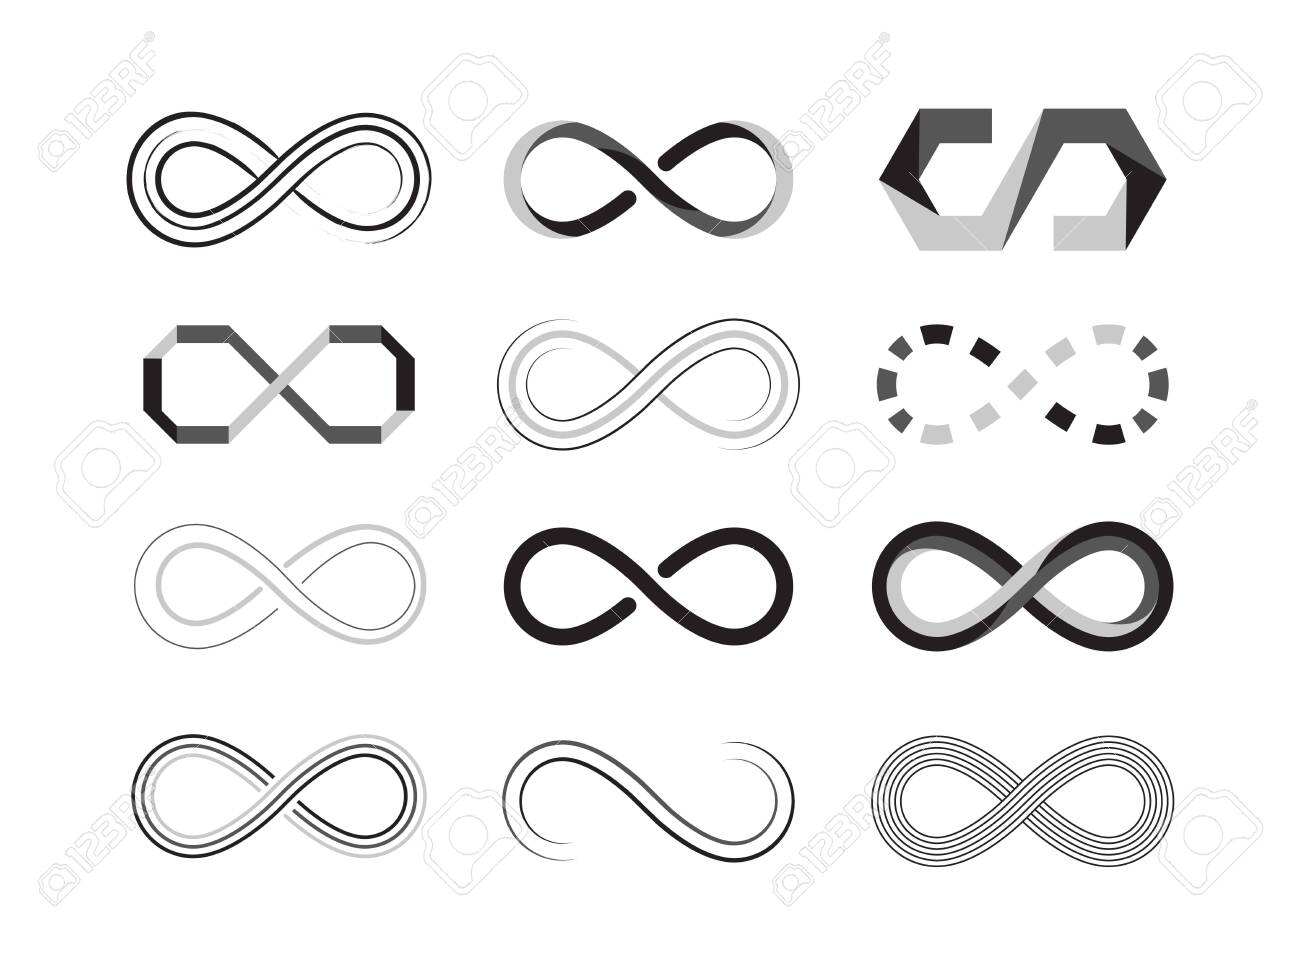 infinity sign. eternity abstract icons of future graphic symbolism. vector illustrations templates isolated - 140838036